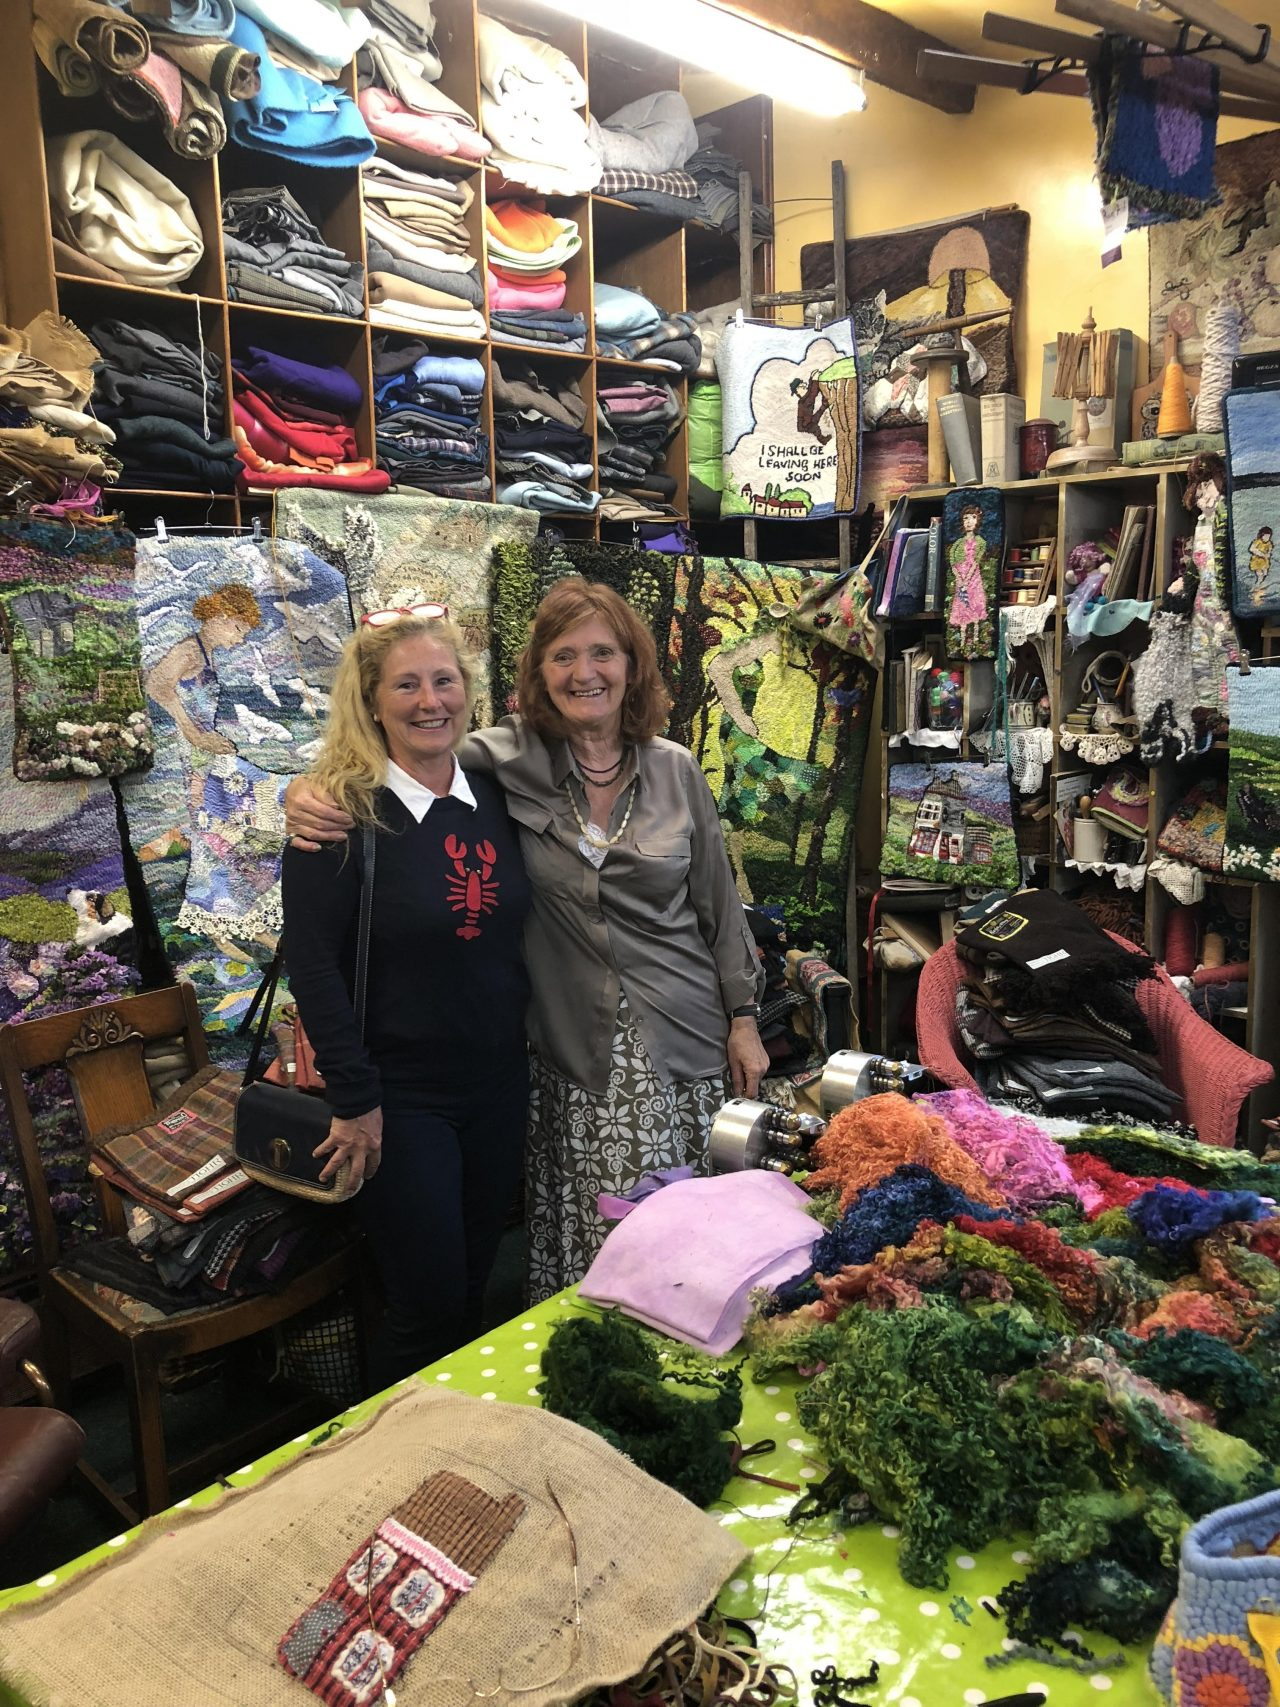 Yvonne Iten-Scott with rug maker Heather Ritchie in Heathers studio packed with fabrics.